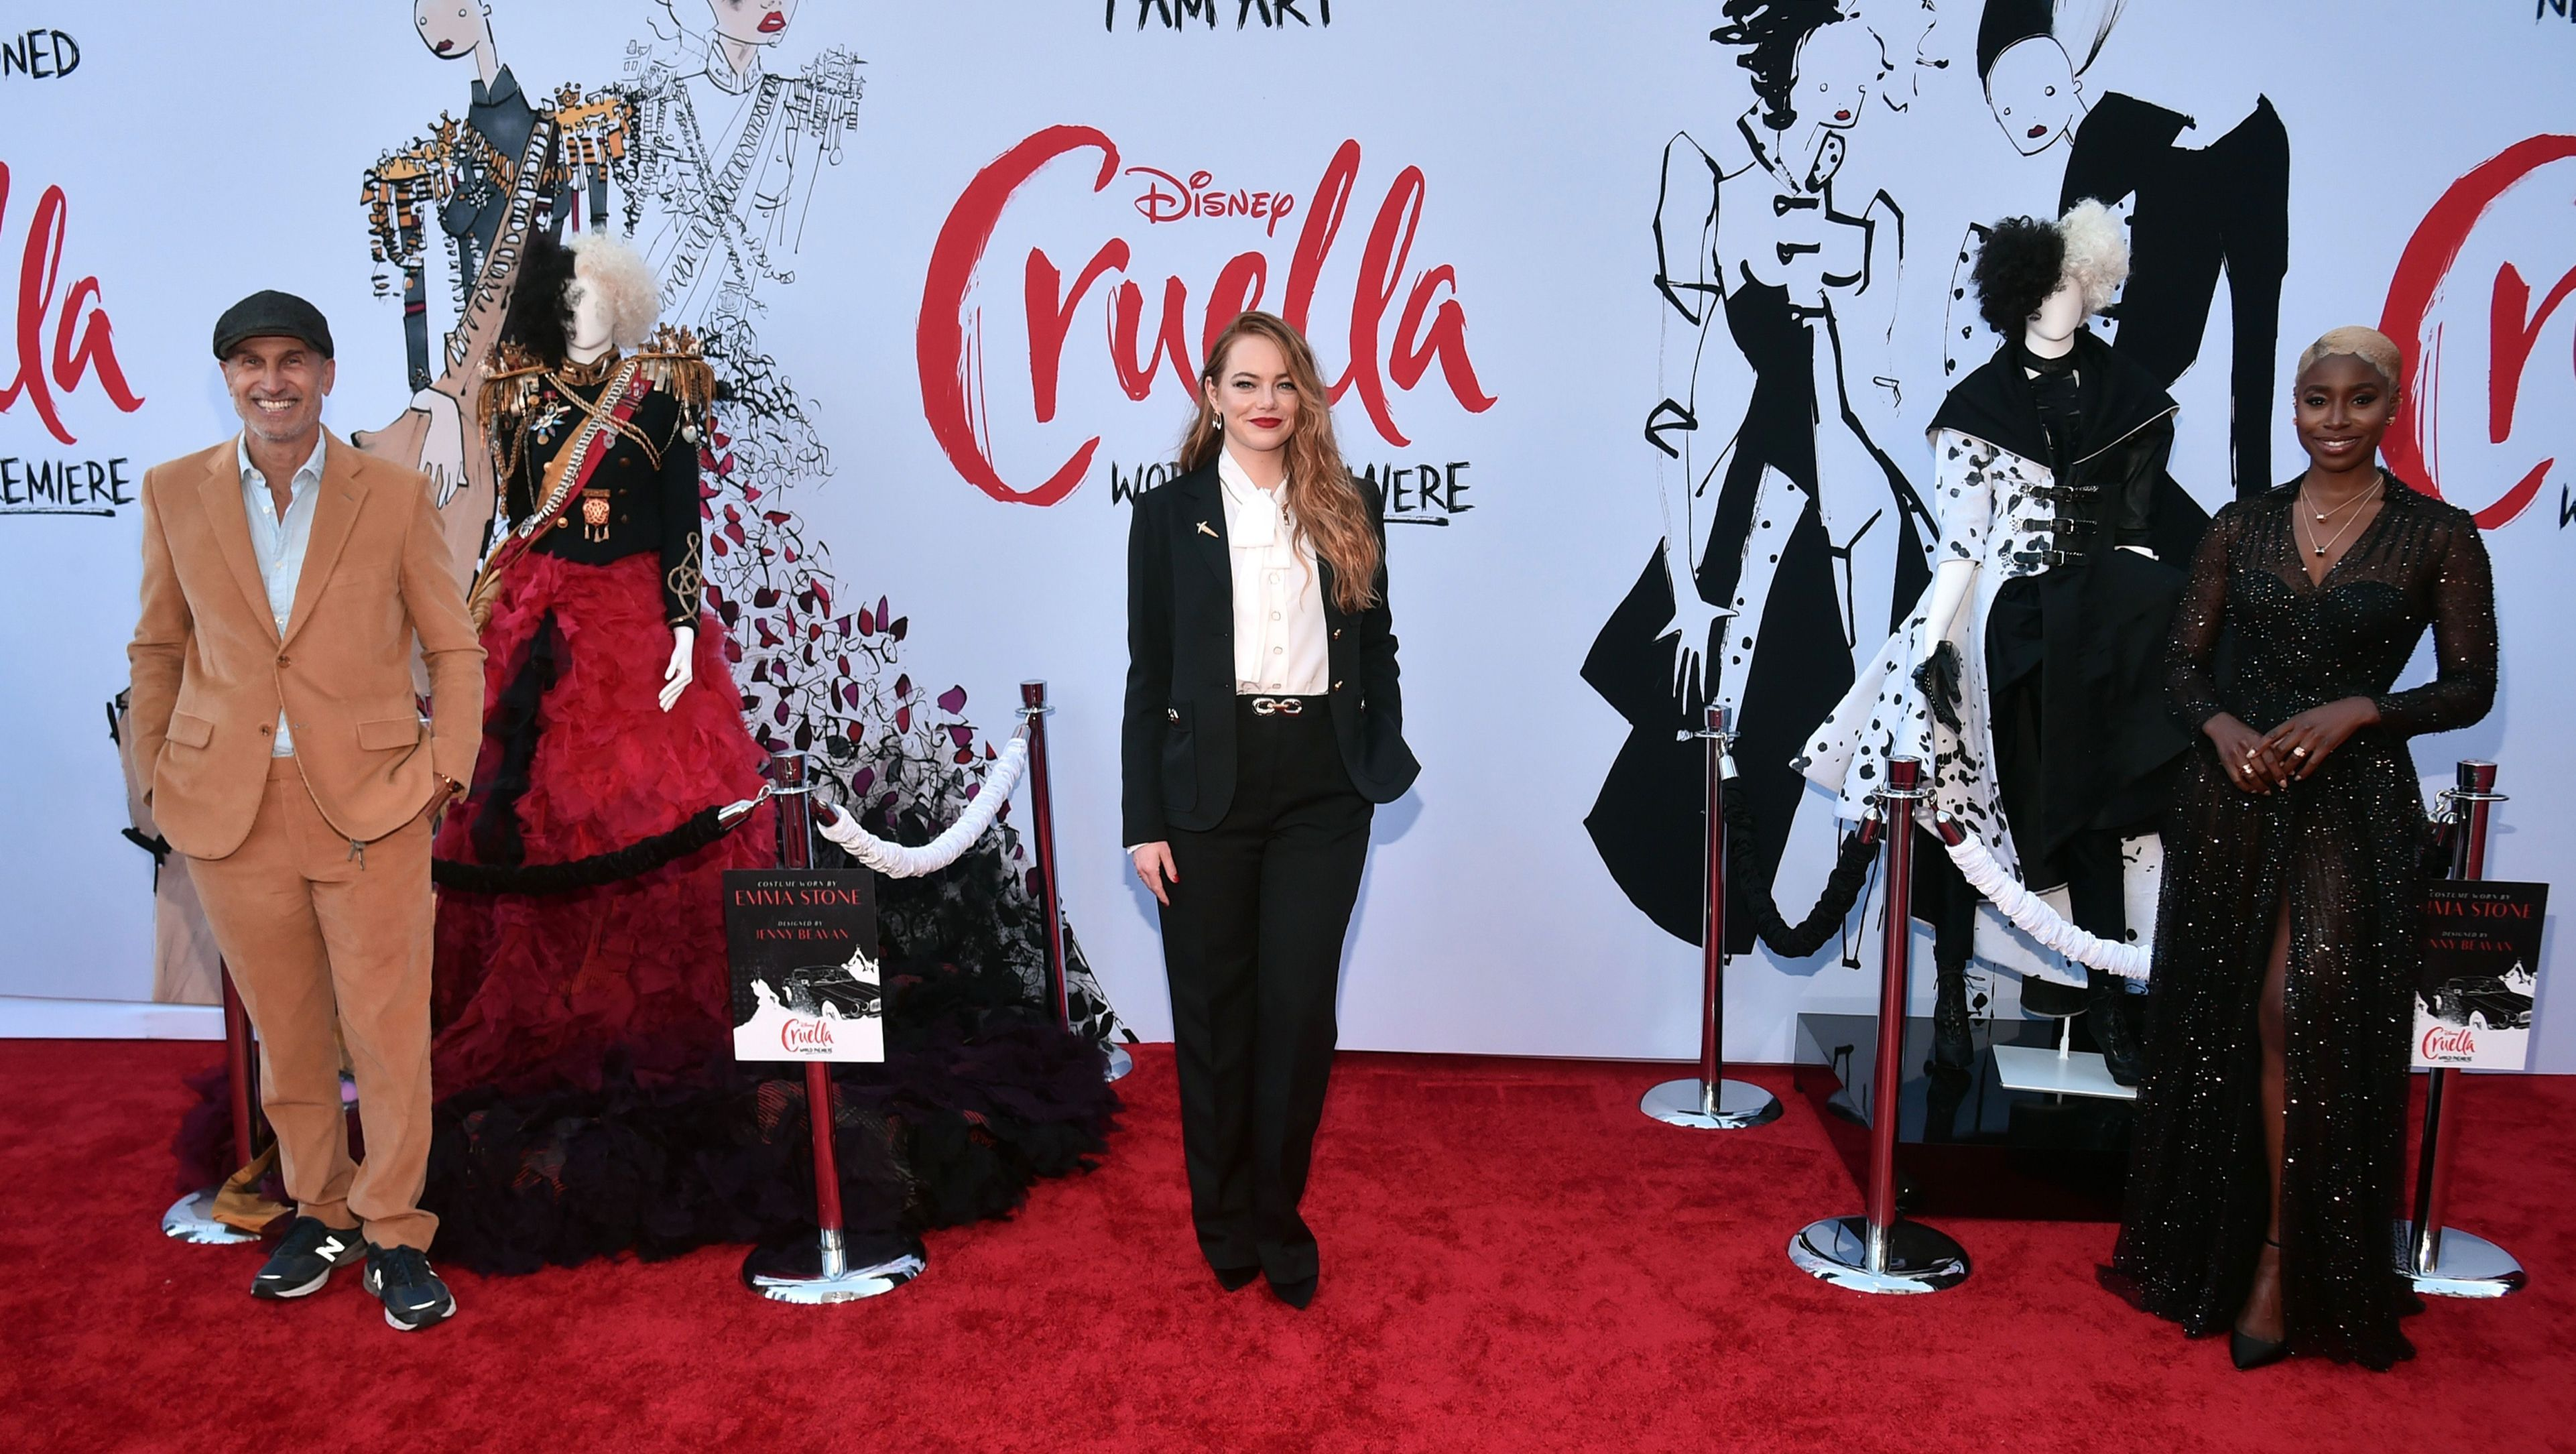 Emma Stone stands in a suit and white blouse at the 'Cruella' premiere.